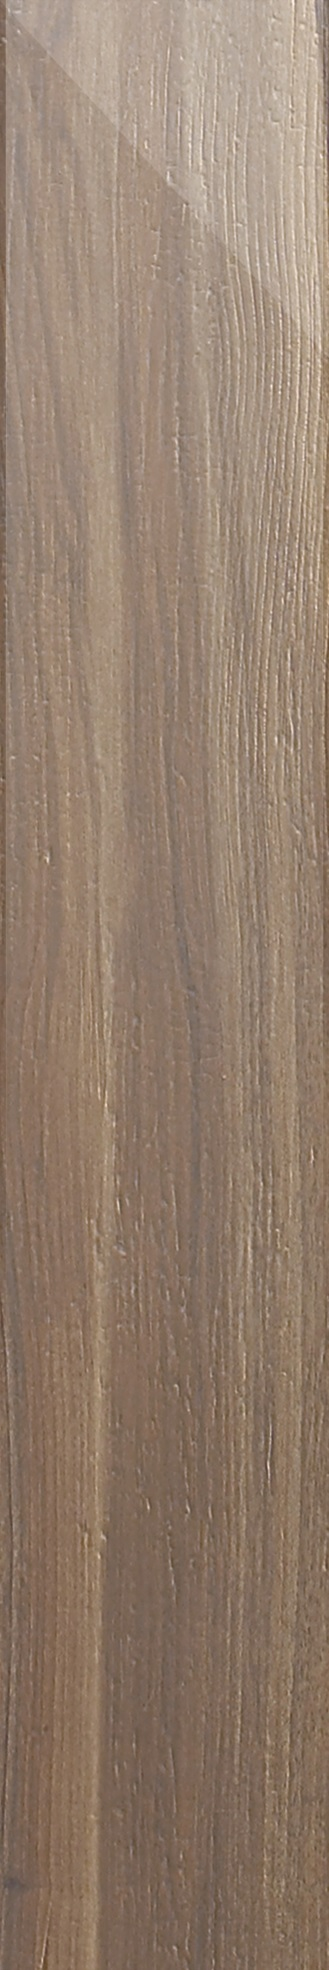 AUBURNWOOD POLISHED EXQUISITEWOOD